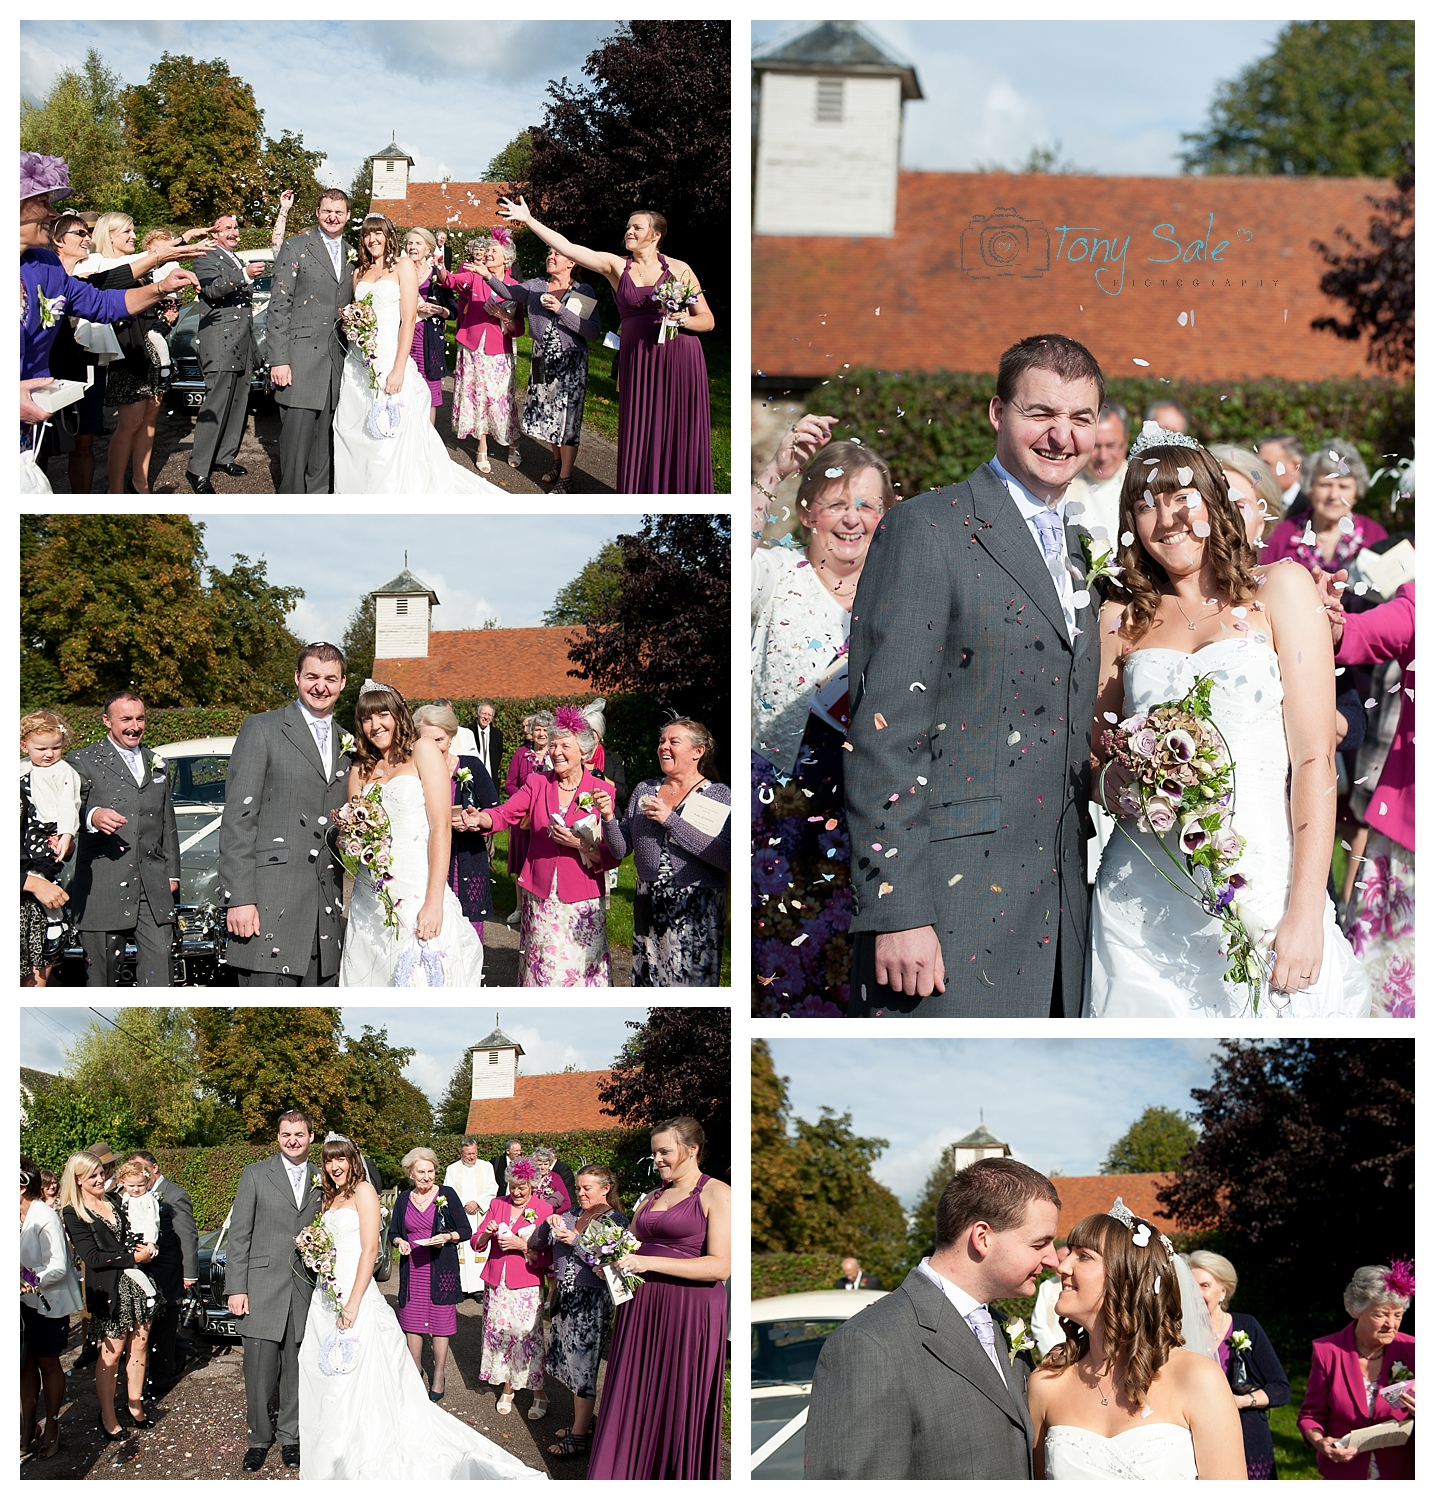 Wedding Photography Colchester_Tony Sale Photography_14